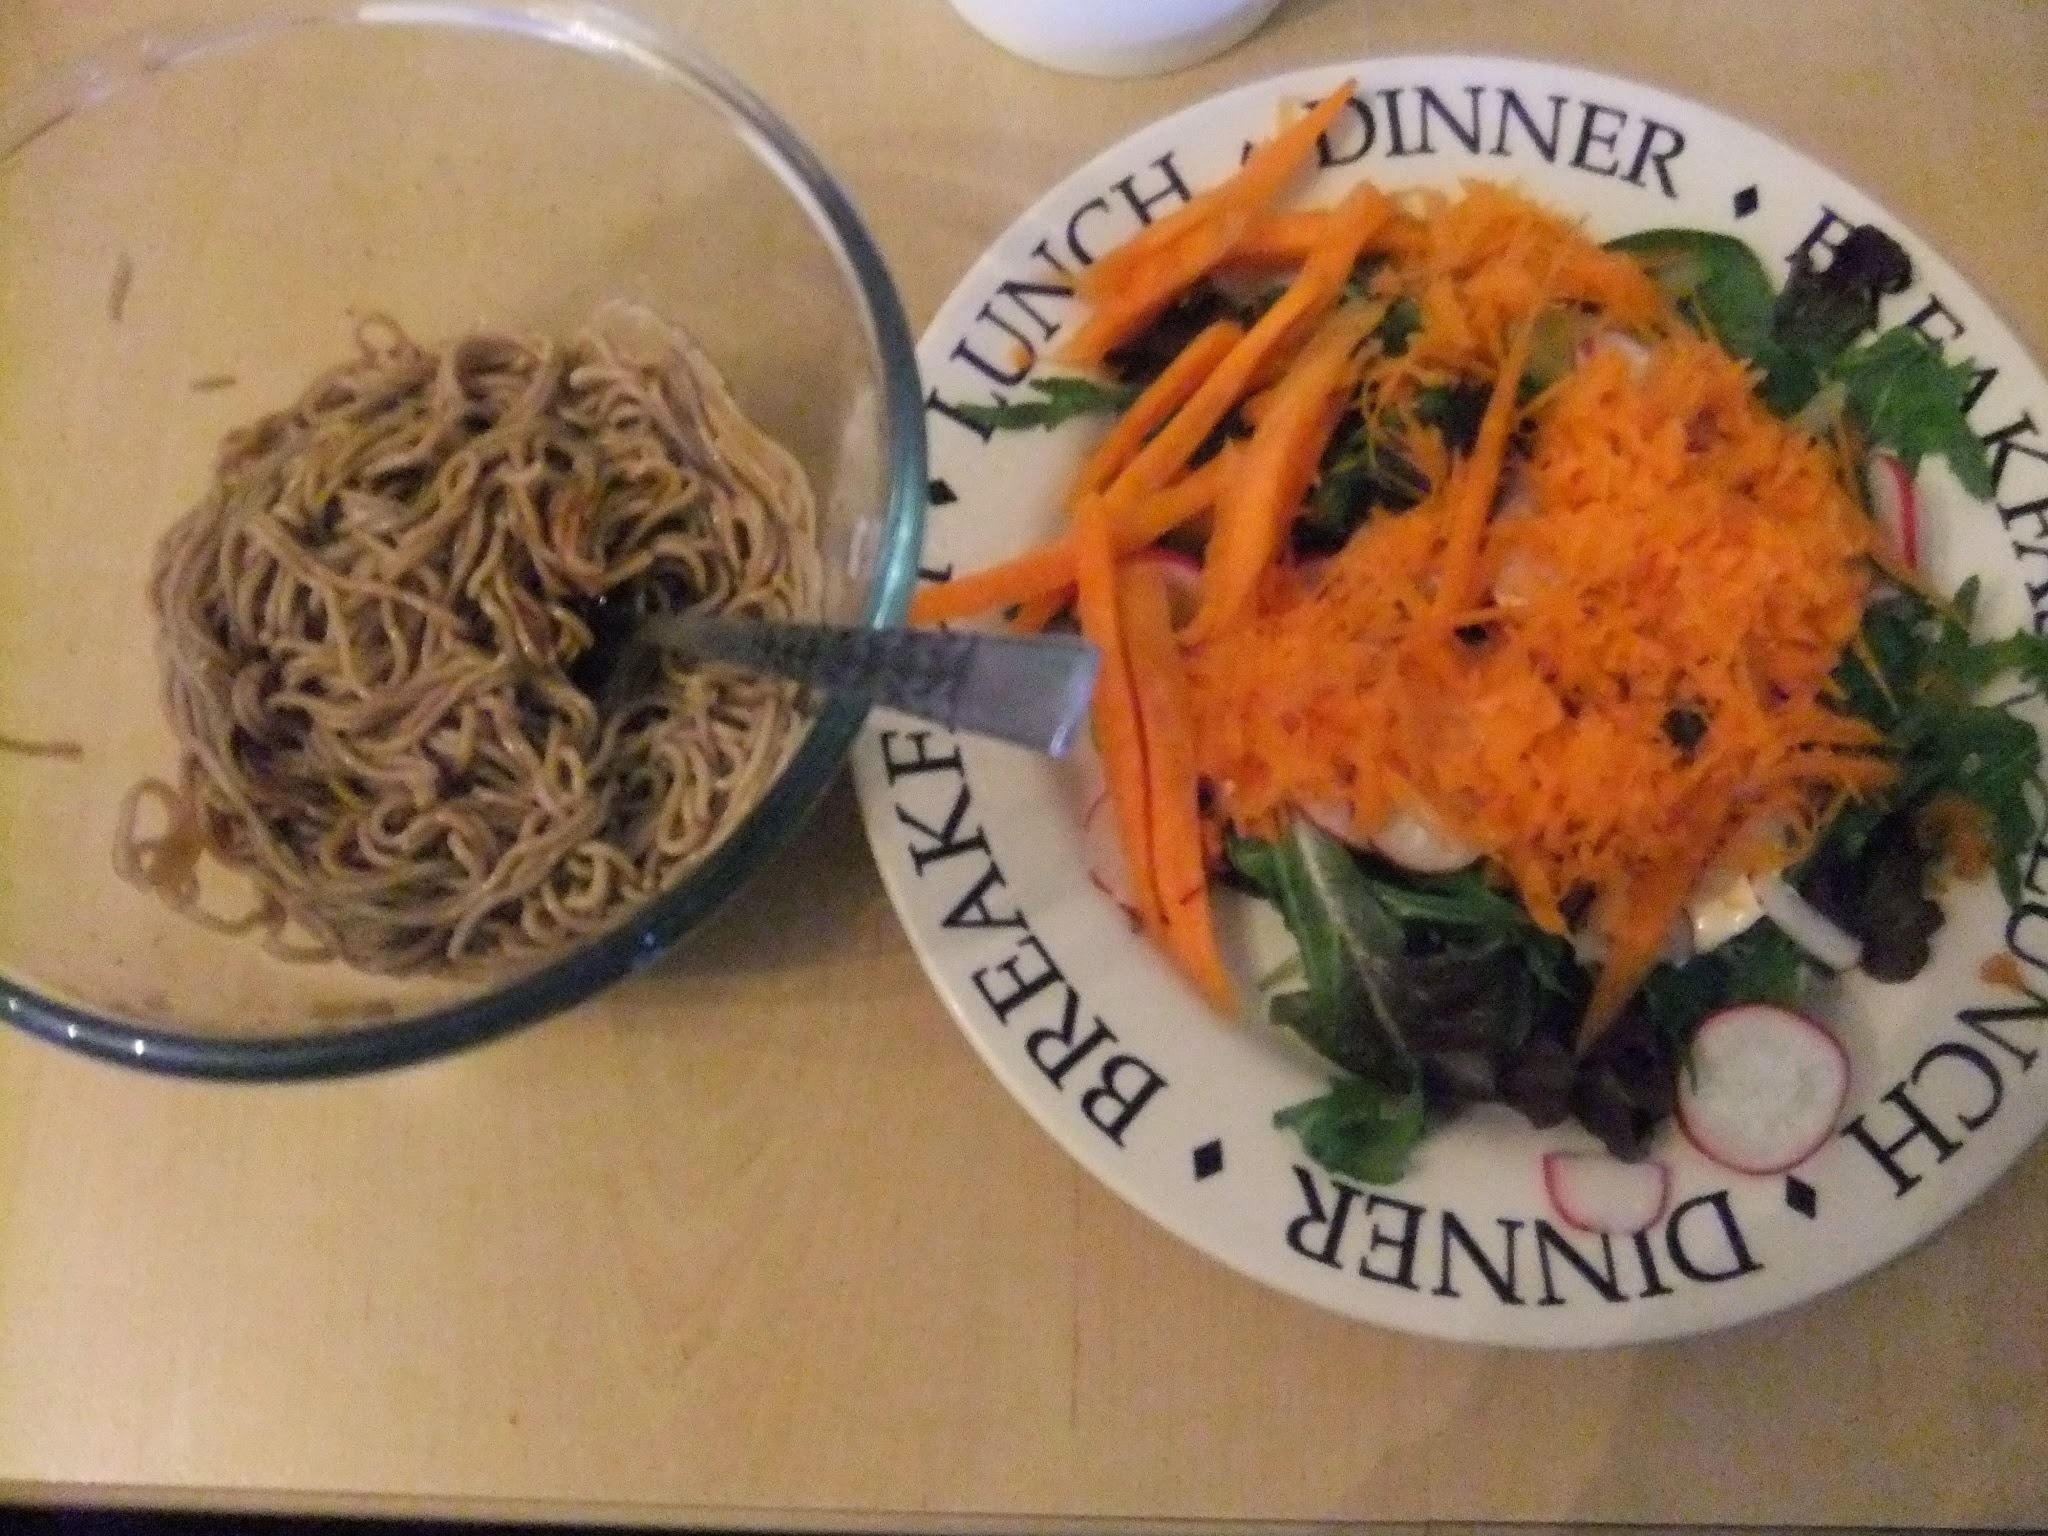 Quick lunch idea - chinese style buckwheat noodles and salad